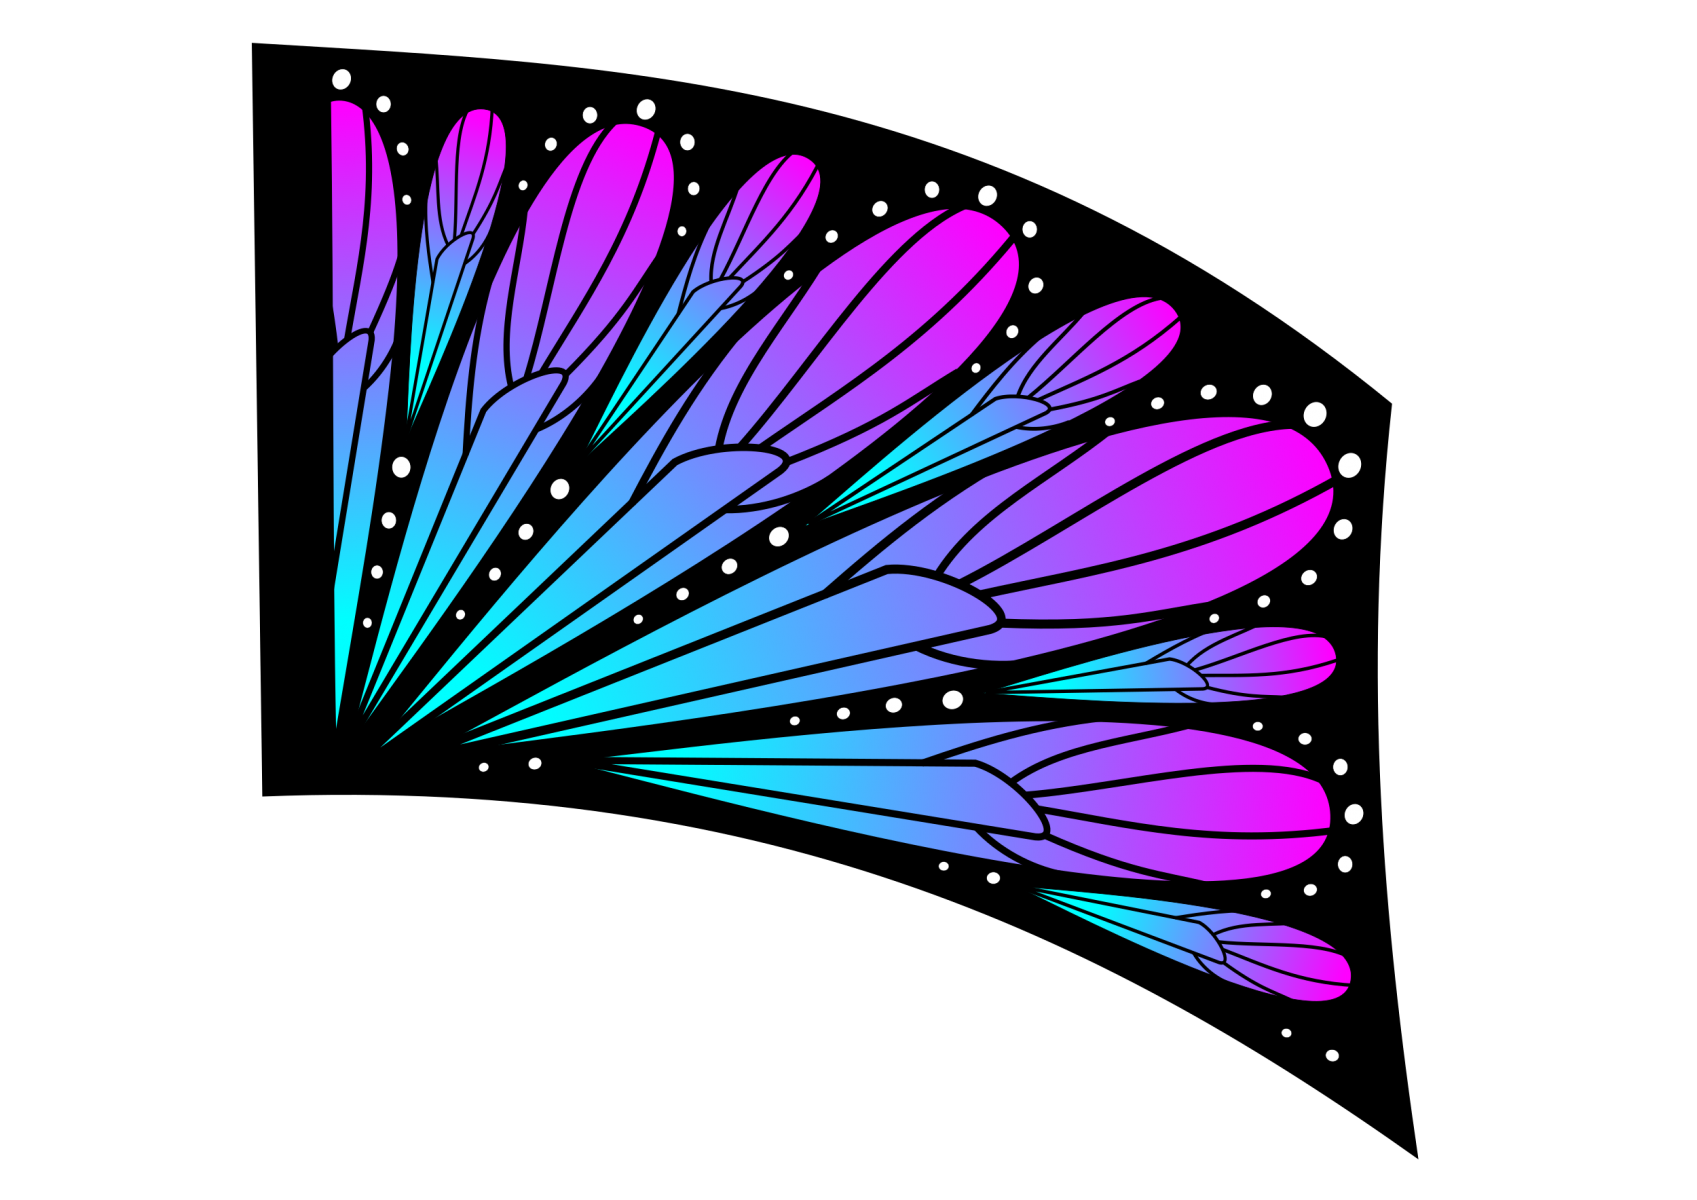 070504s - 36x54 Standard Teal-Pink Ombre Butterfly